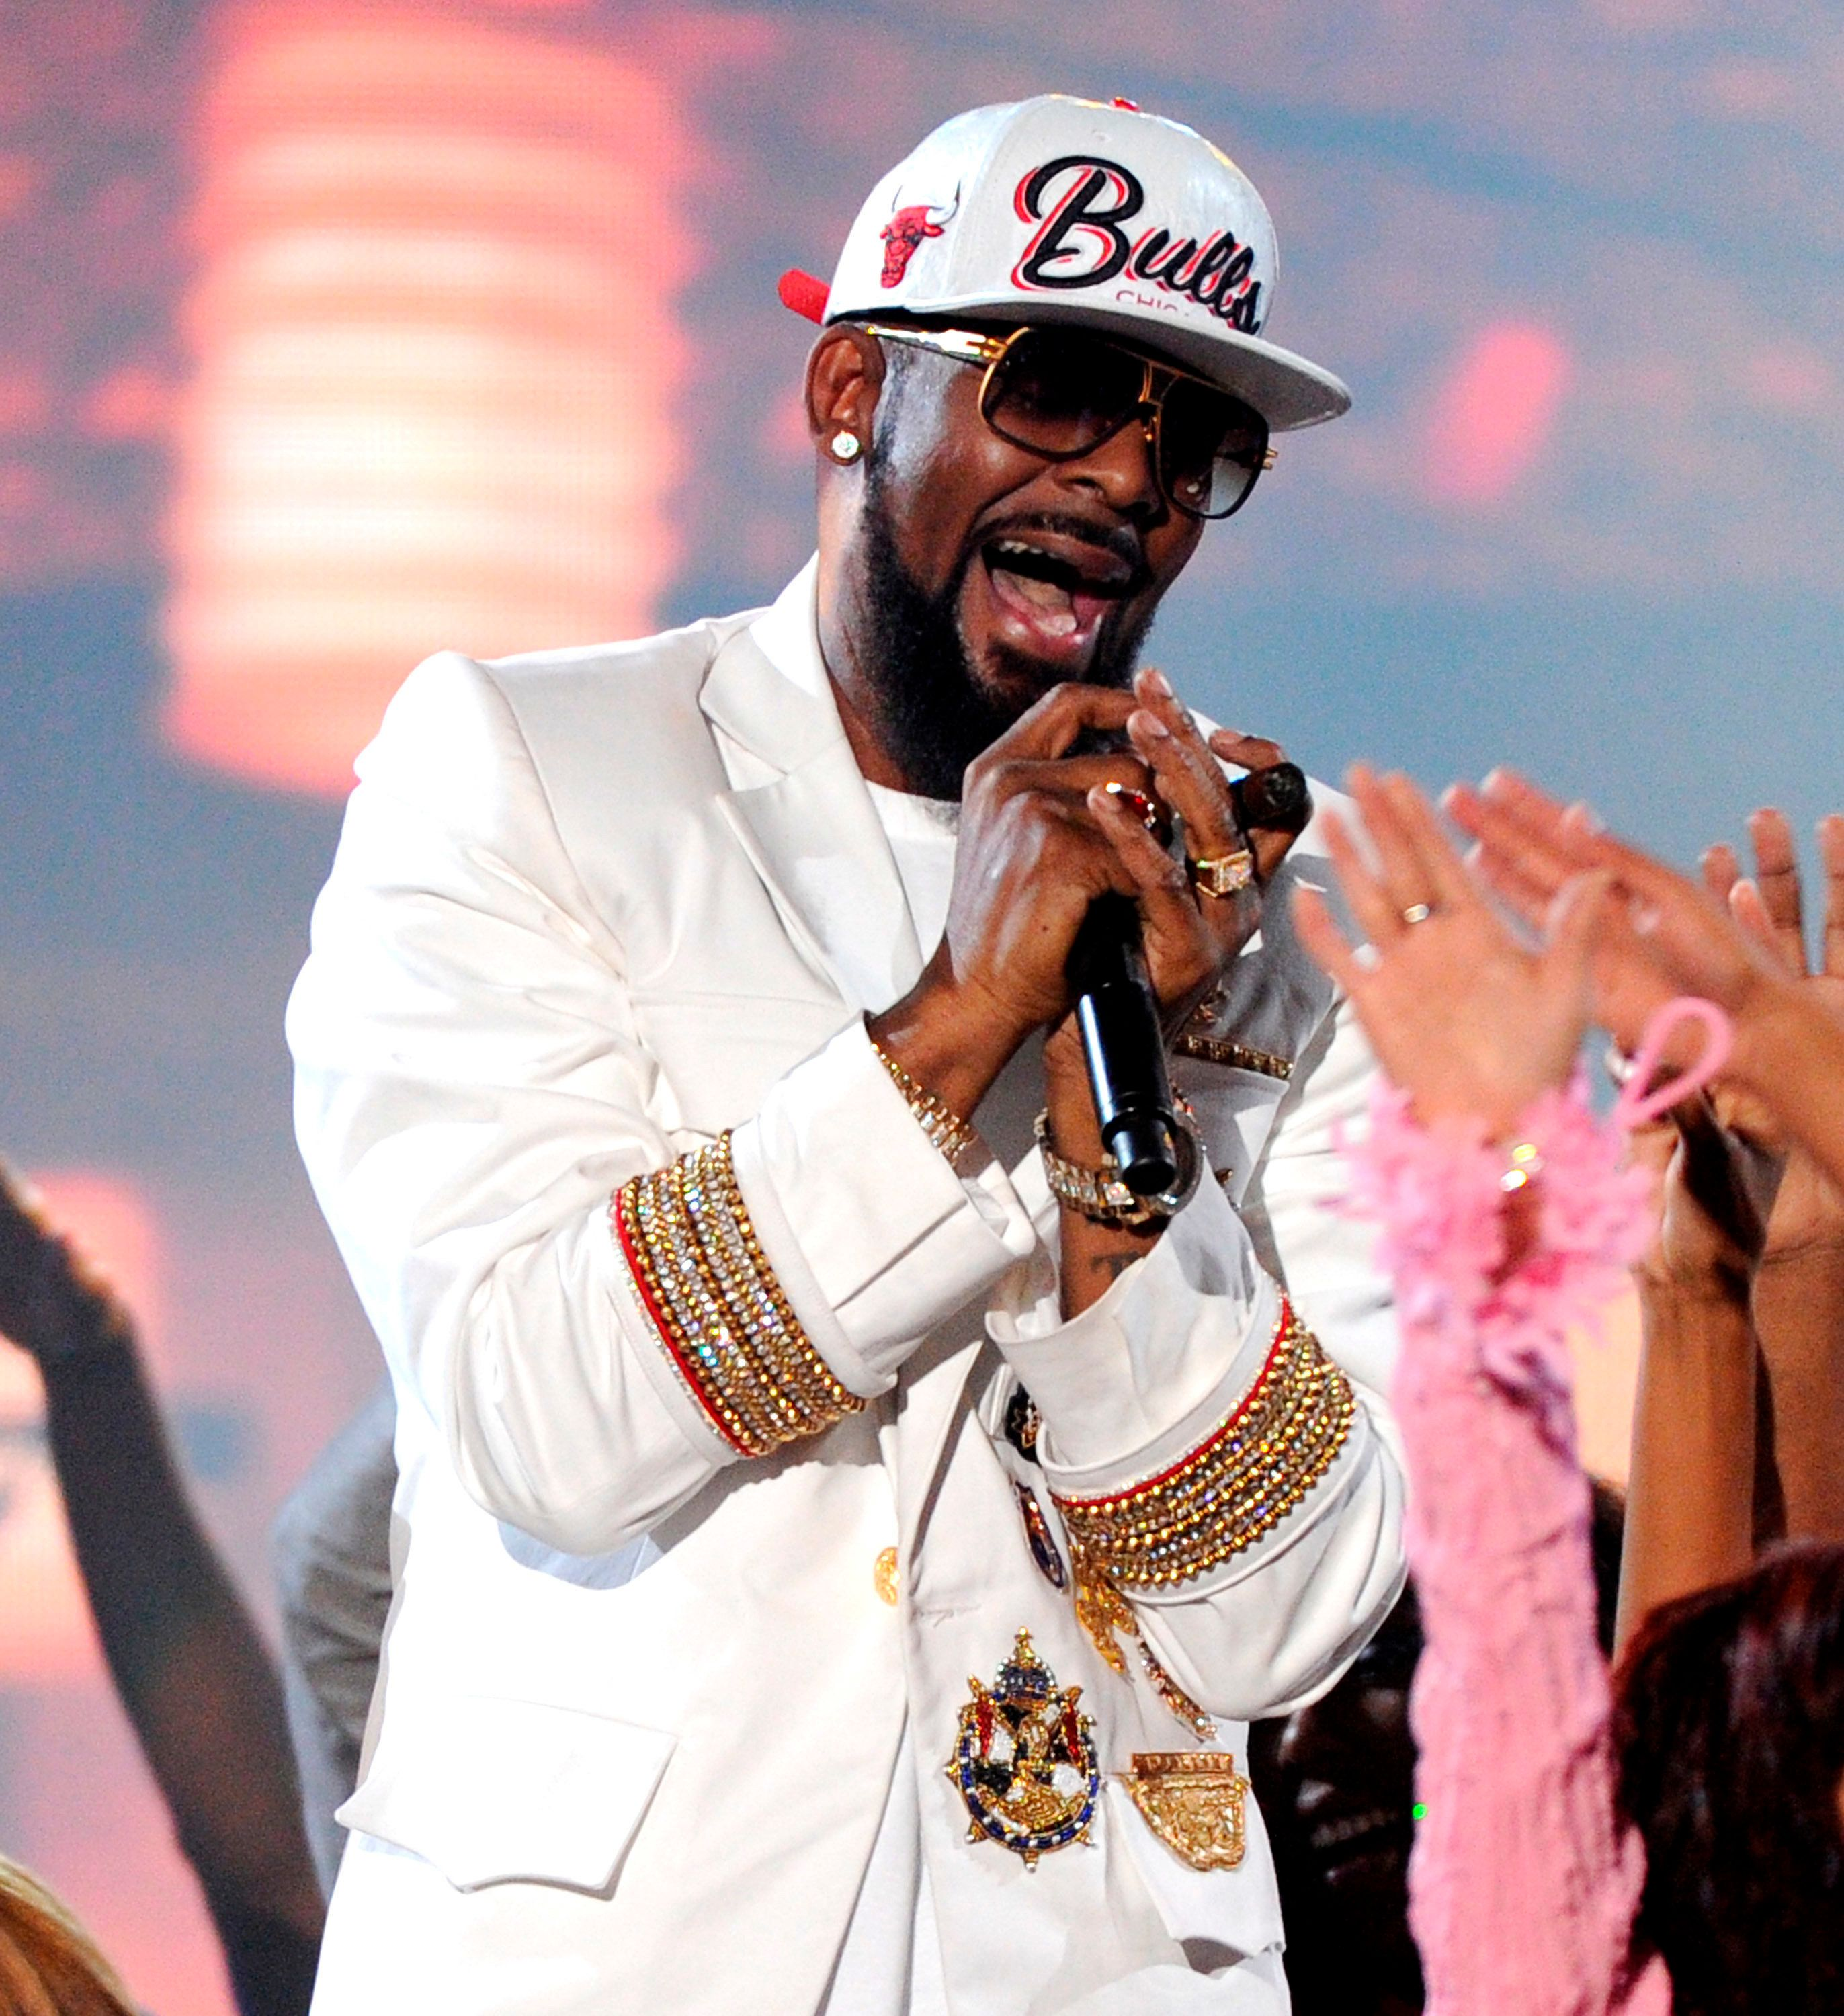 LAS VEGAS, NV - NOVEMBER 6: R. Kelly performs the 2015 Soul Train Awards at the Orleans Arena on November 6, 2015 in Las Vegas, Nevada. Credit: mpiPGFM/MediaPunch /IPX